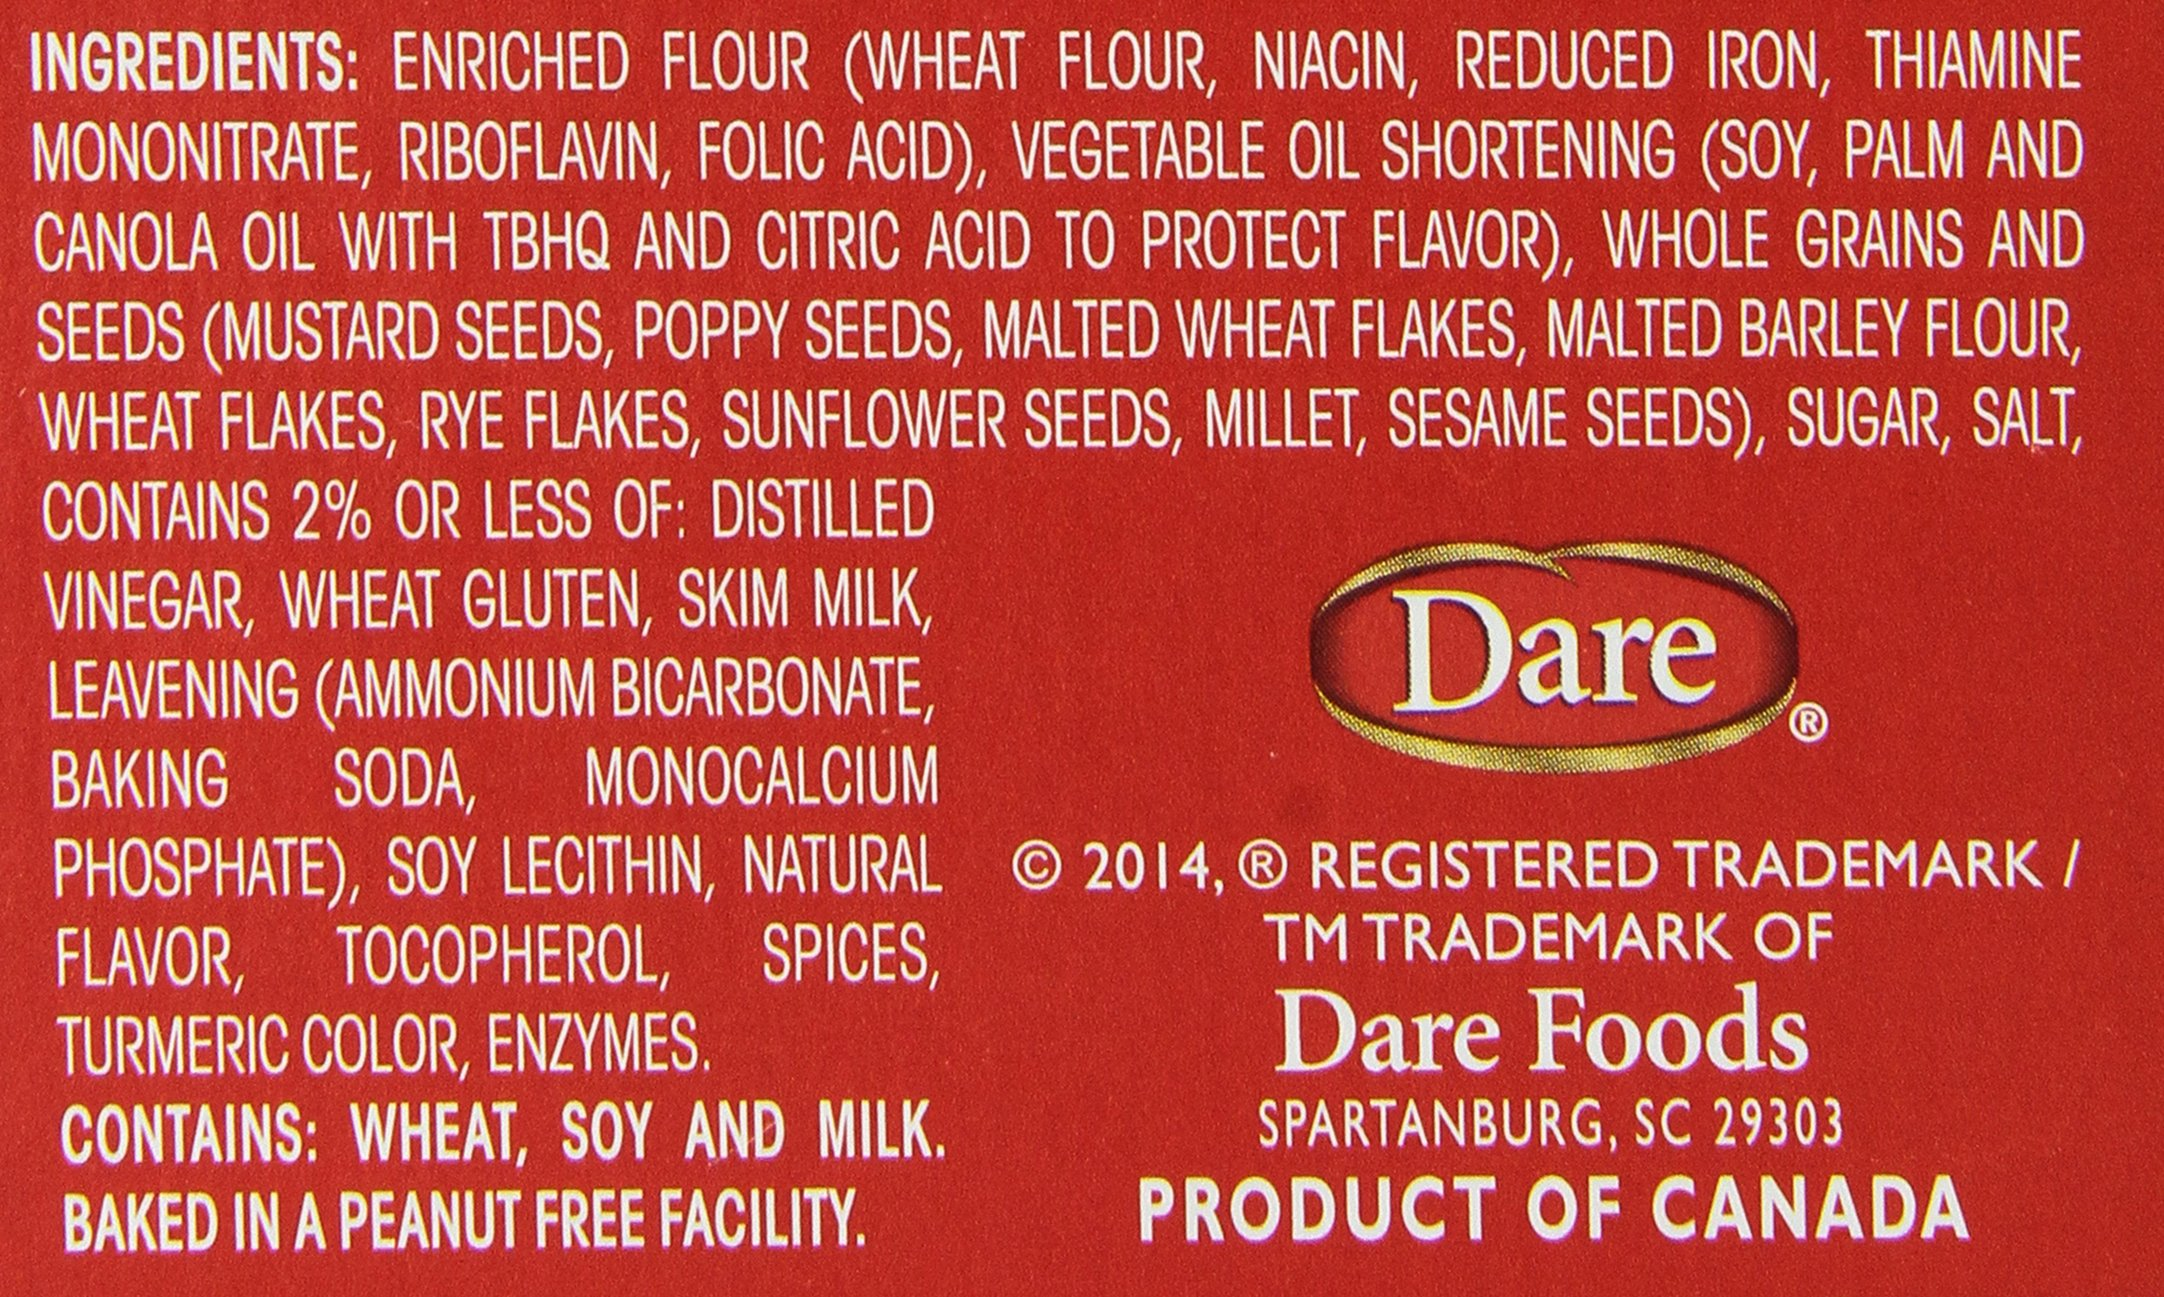 Vinta Crackers, Original – Delicious Bold Taste of 8 Grains and Seeds – No Artificial Flavors, No Cholesterol, Peanut Free - Delicious Plain or Topped, 8.8-ounce. (Pack of 12) by Dare (Image #3)